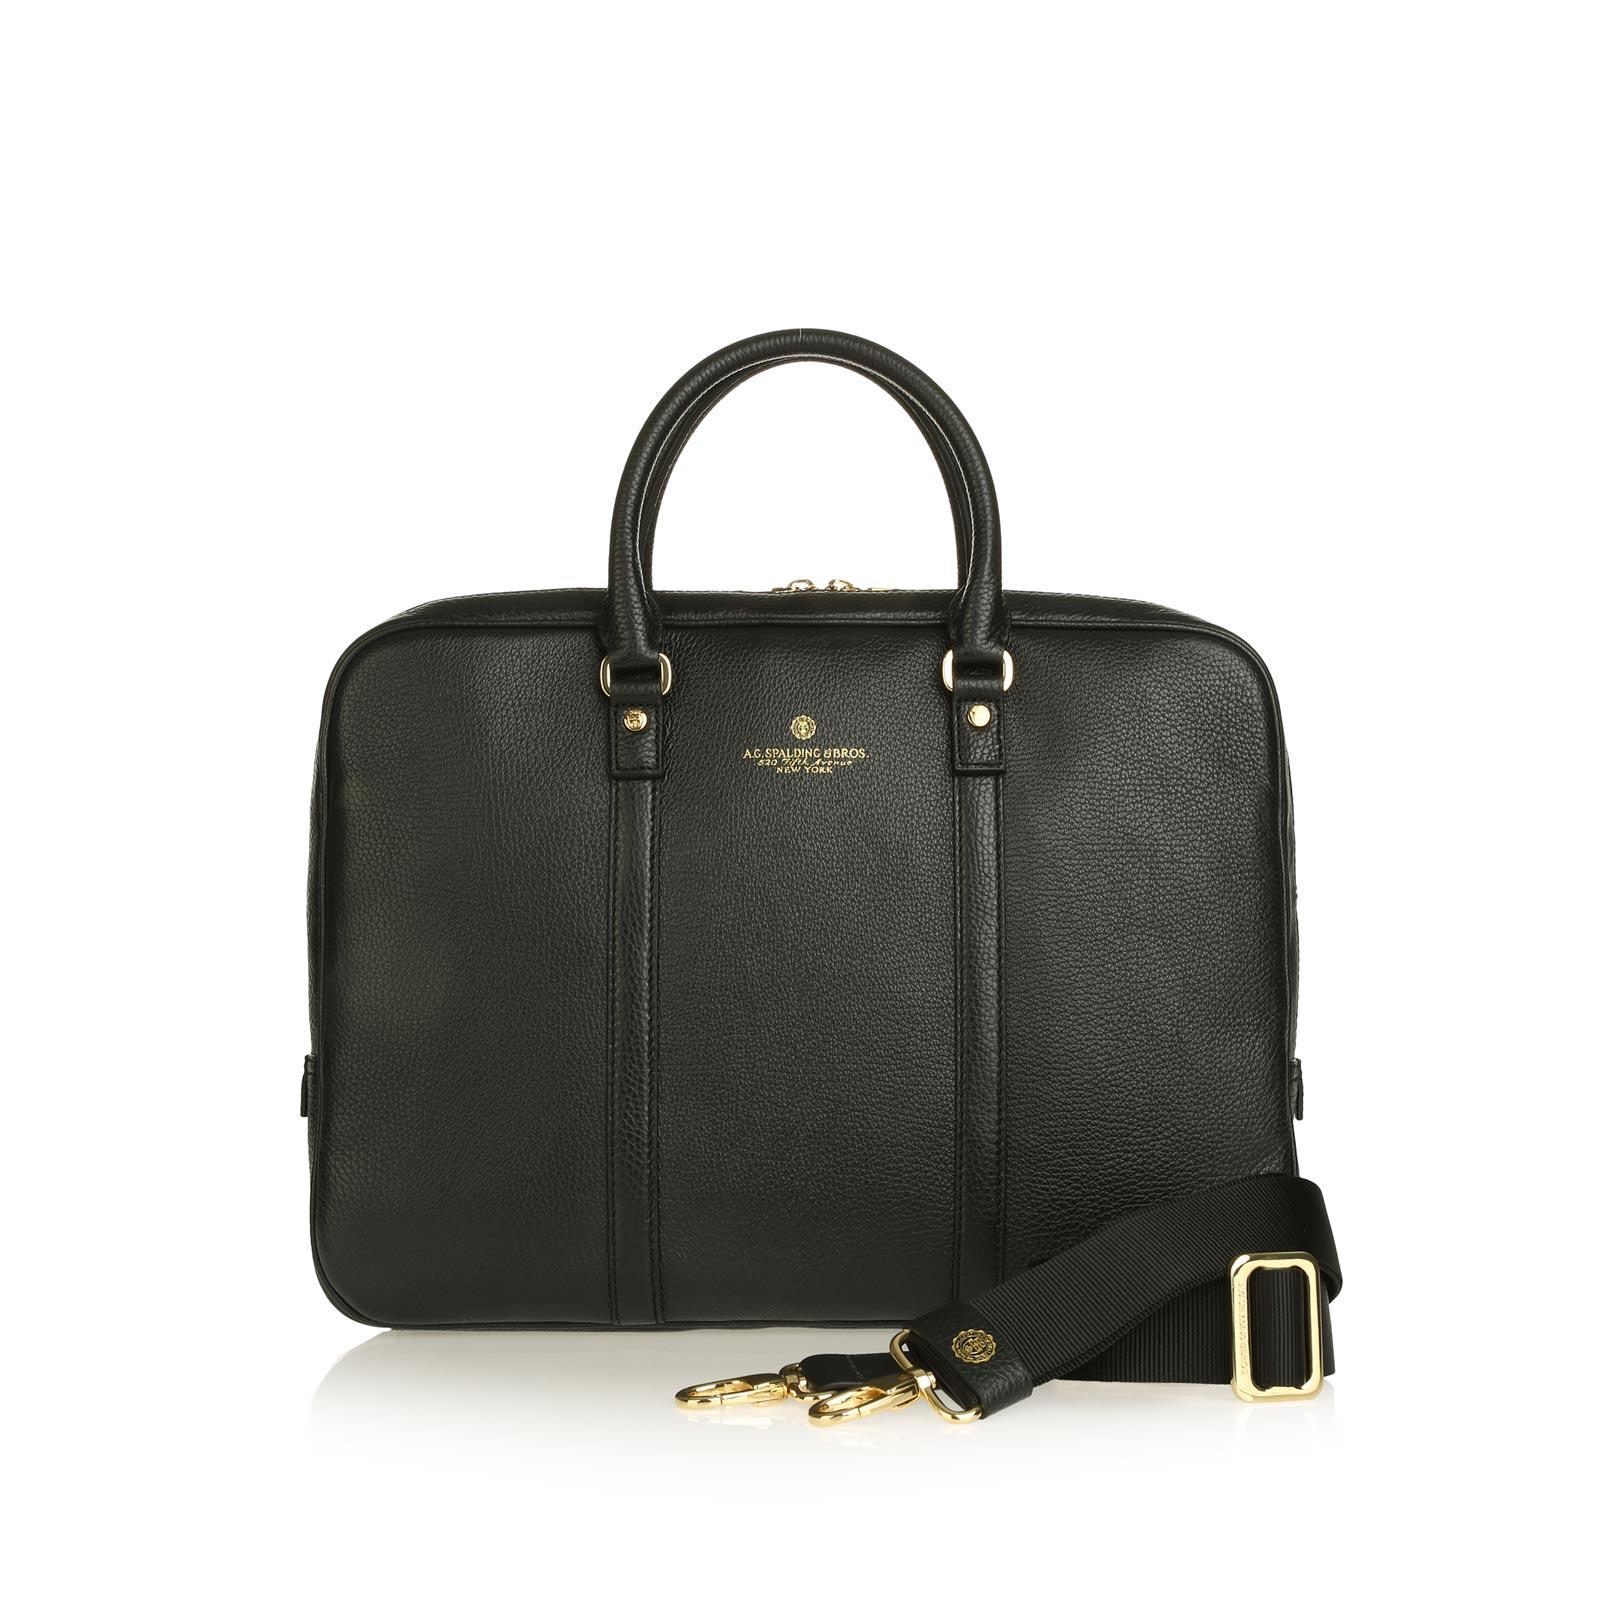 Tiffany Short Handles Briefcase BLACK